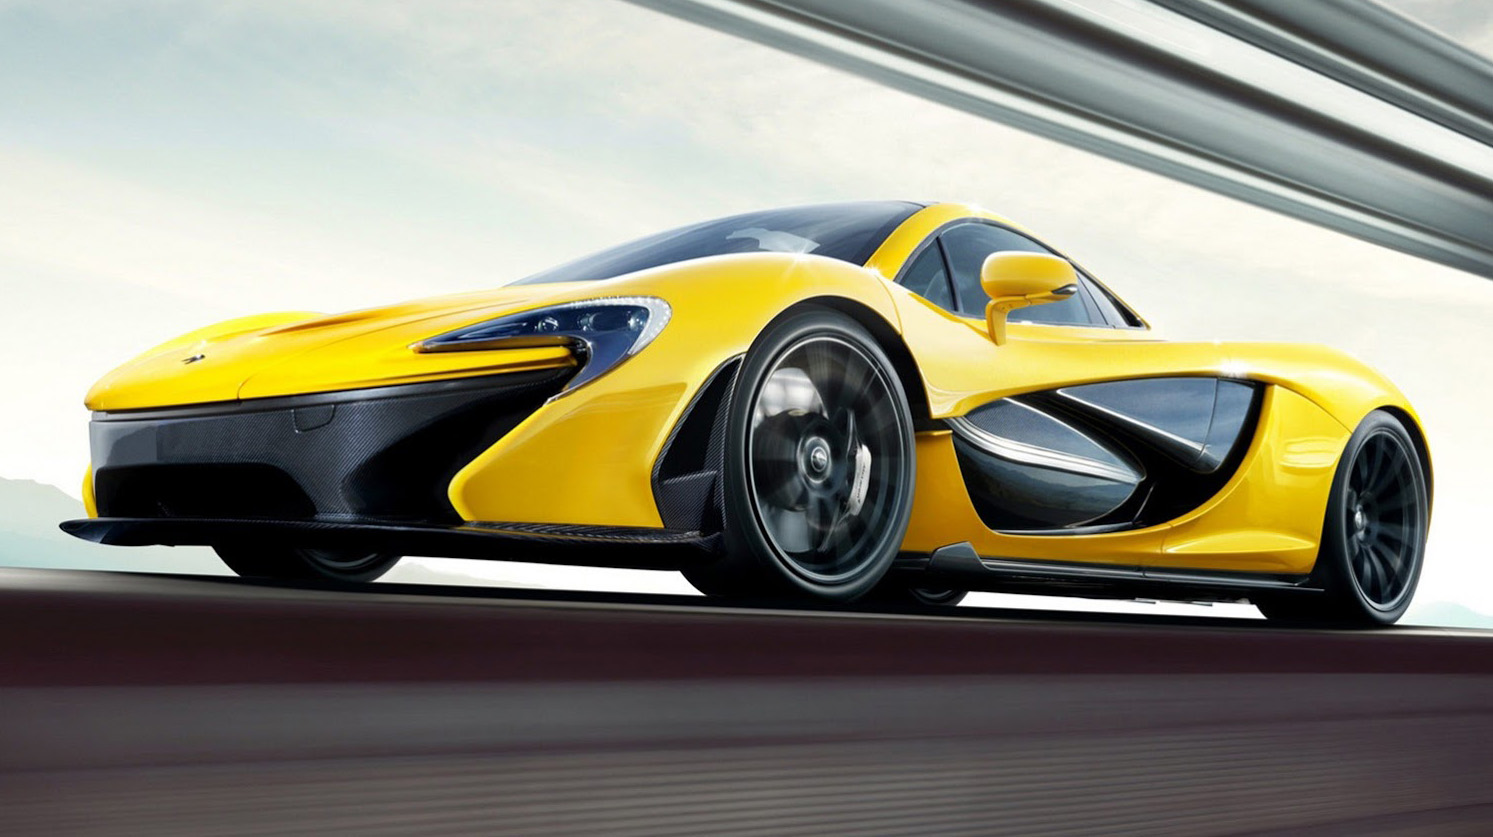 2014 McLaren P1 Photos Surface Online Pictures Gallery Desktop Backgrounds Wallpaper